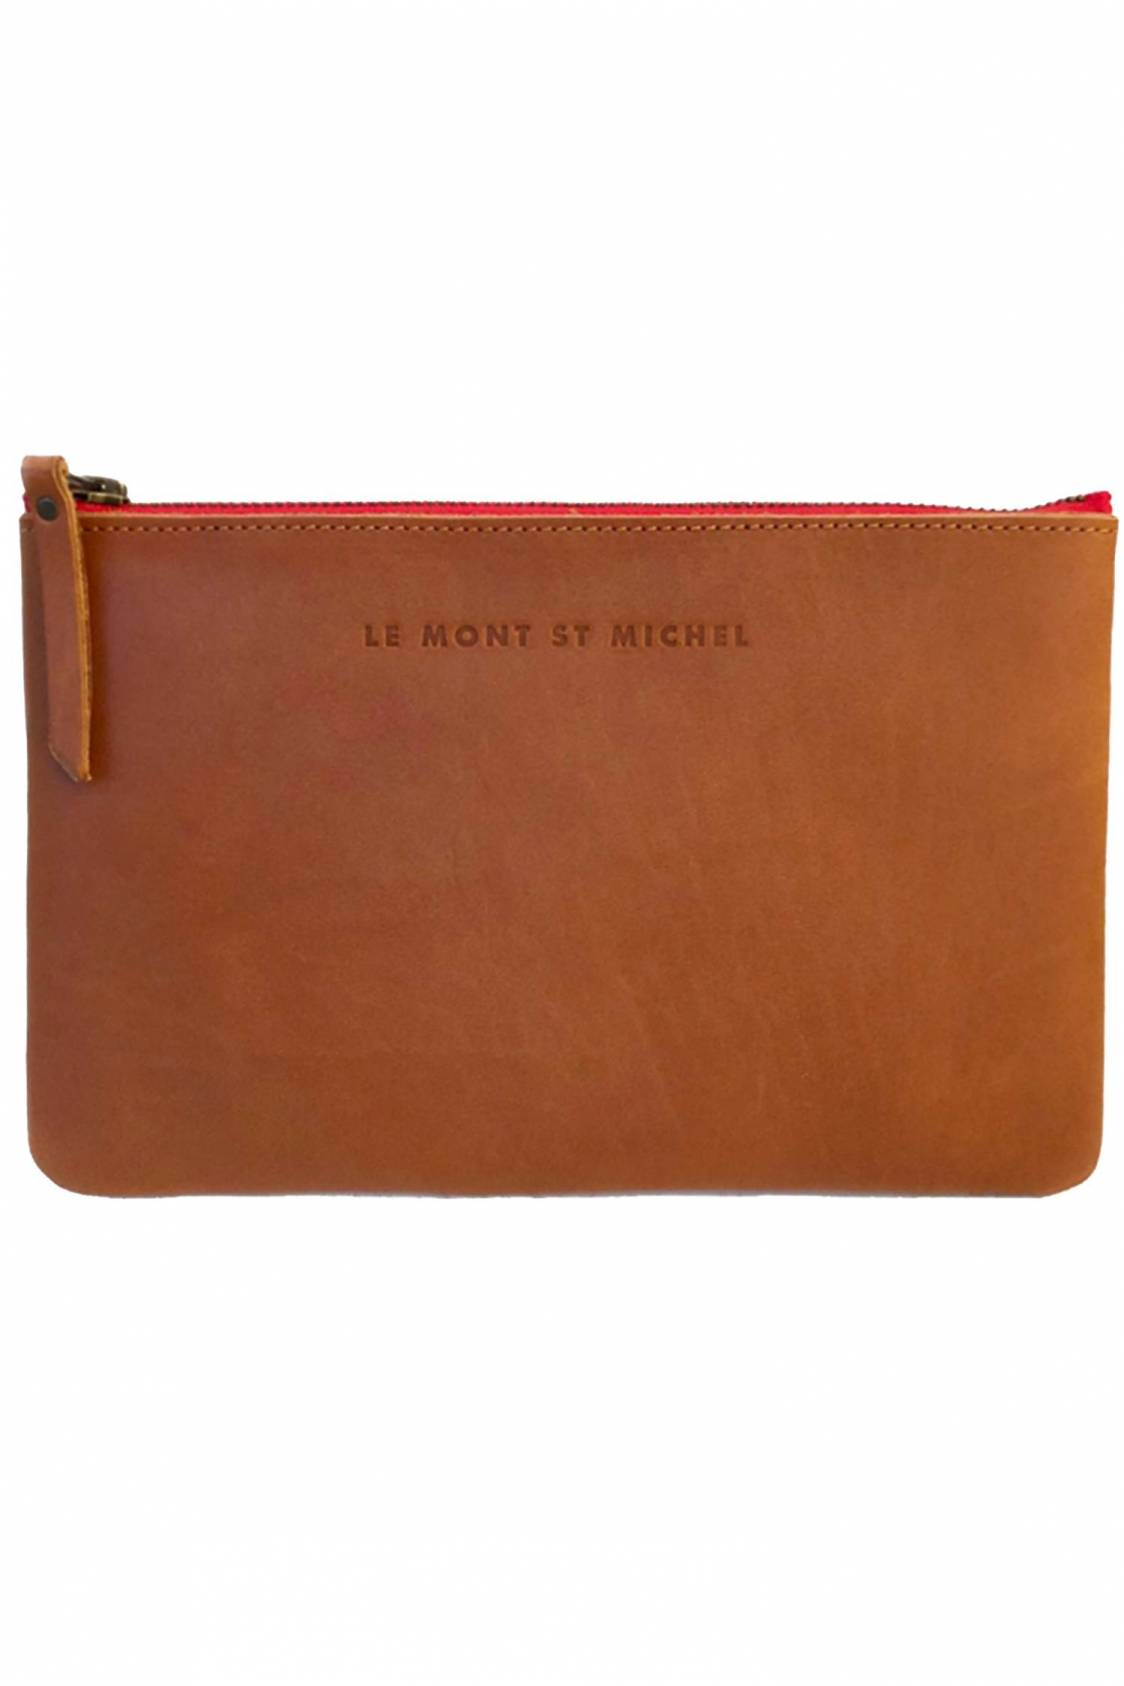 Leather zip case - large size